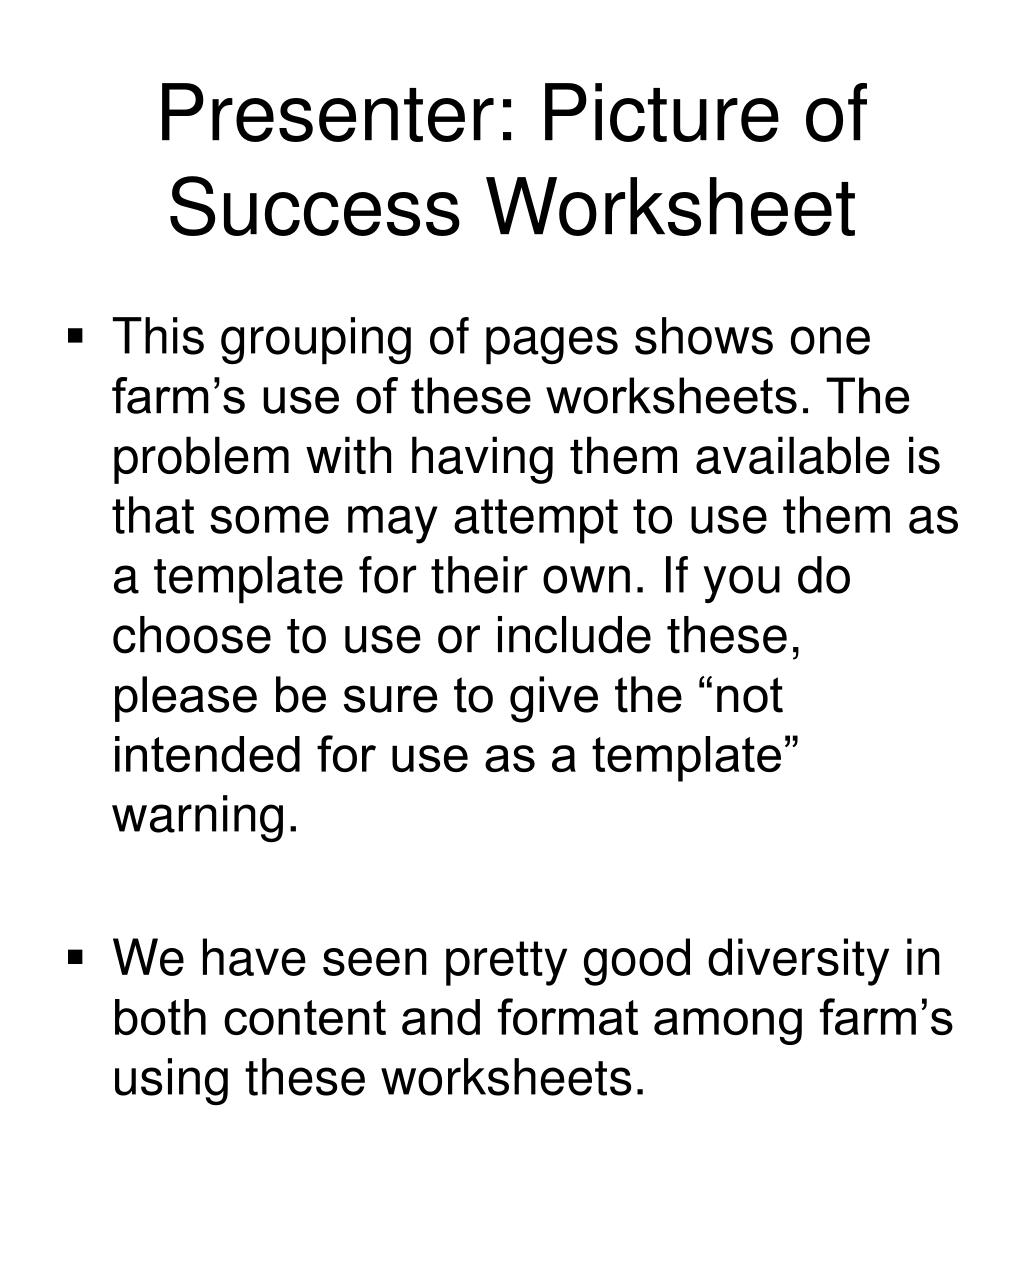 Presenter: Picture of Success Worksheet